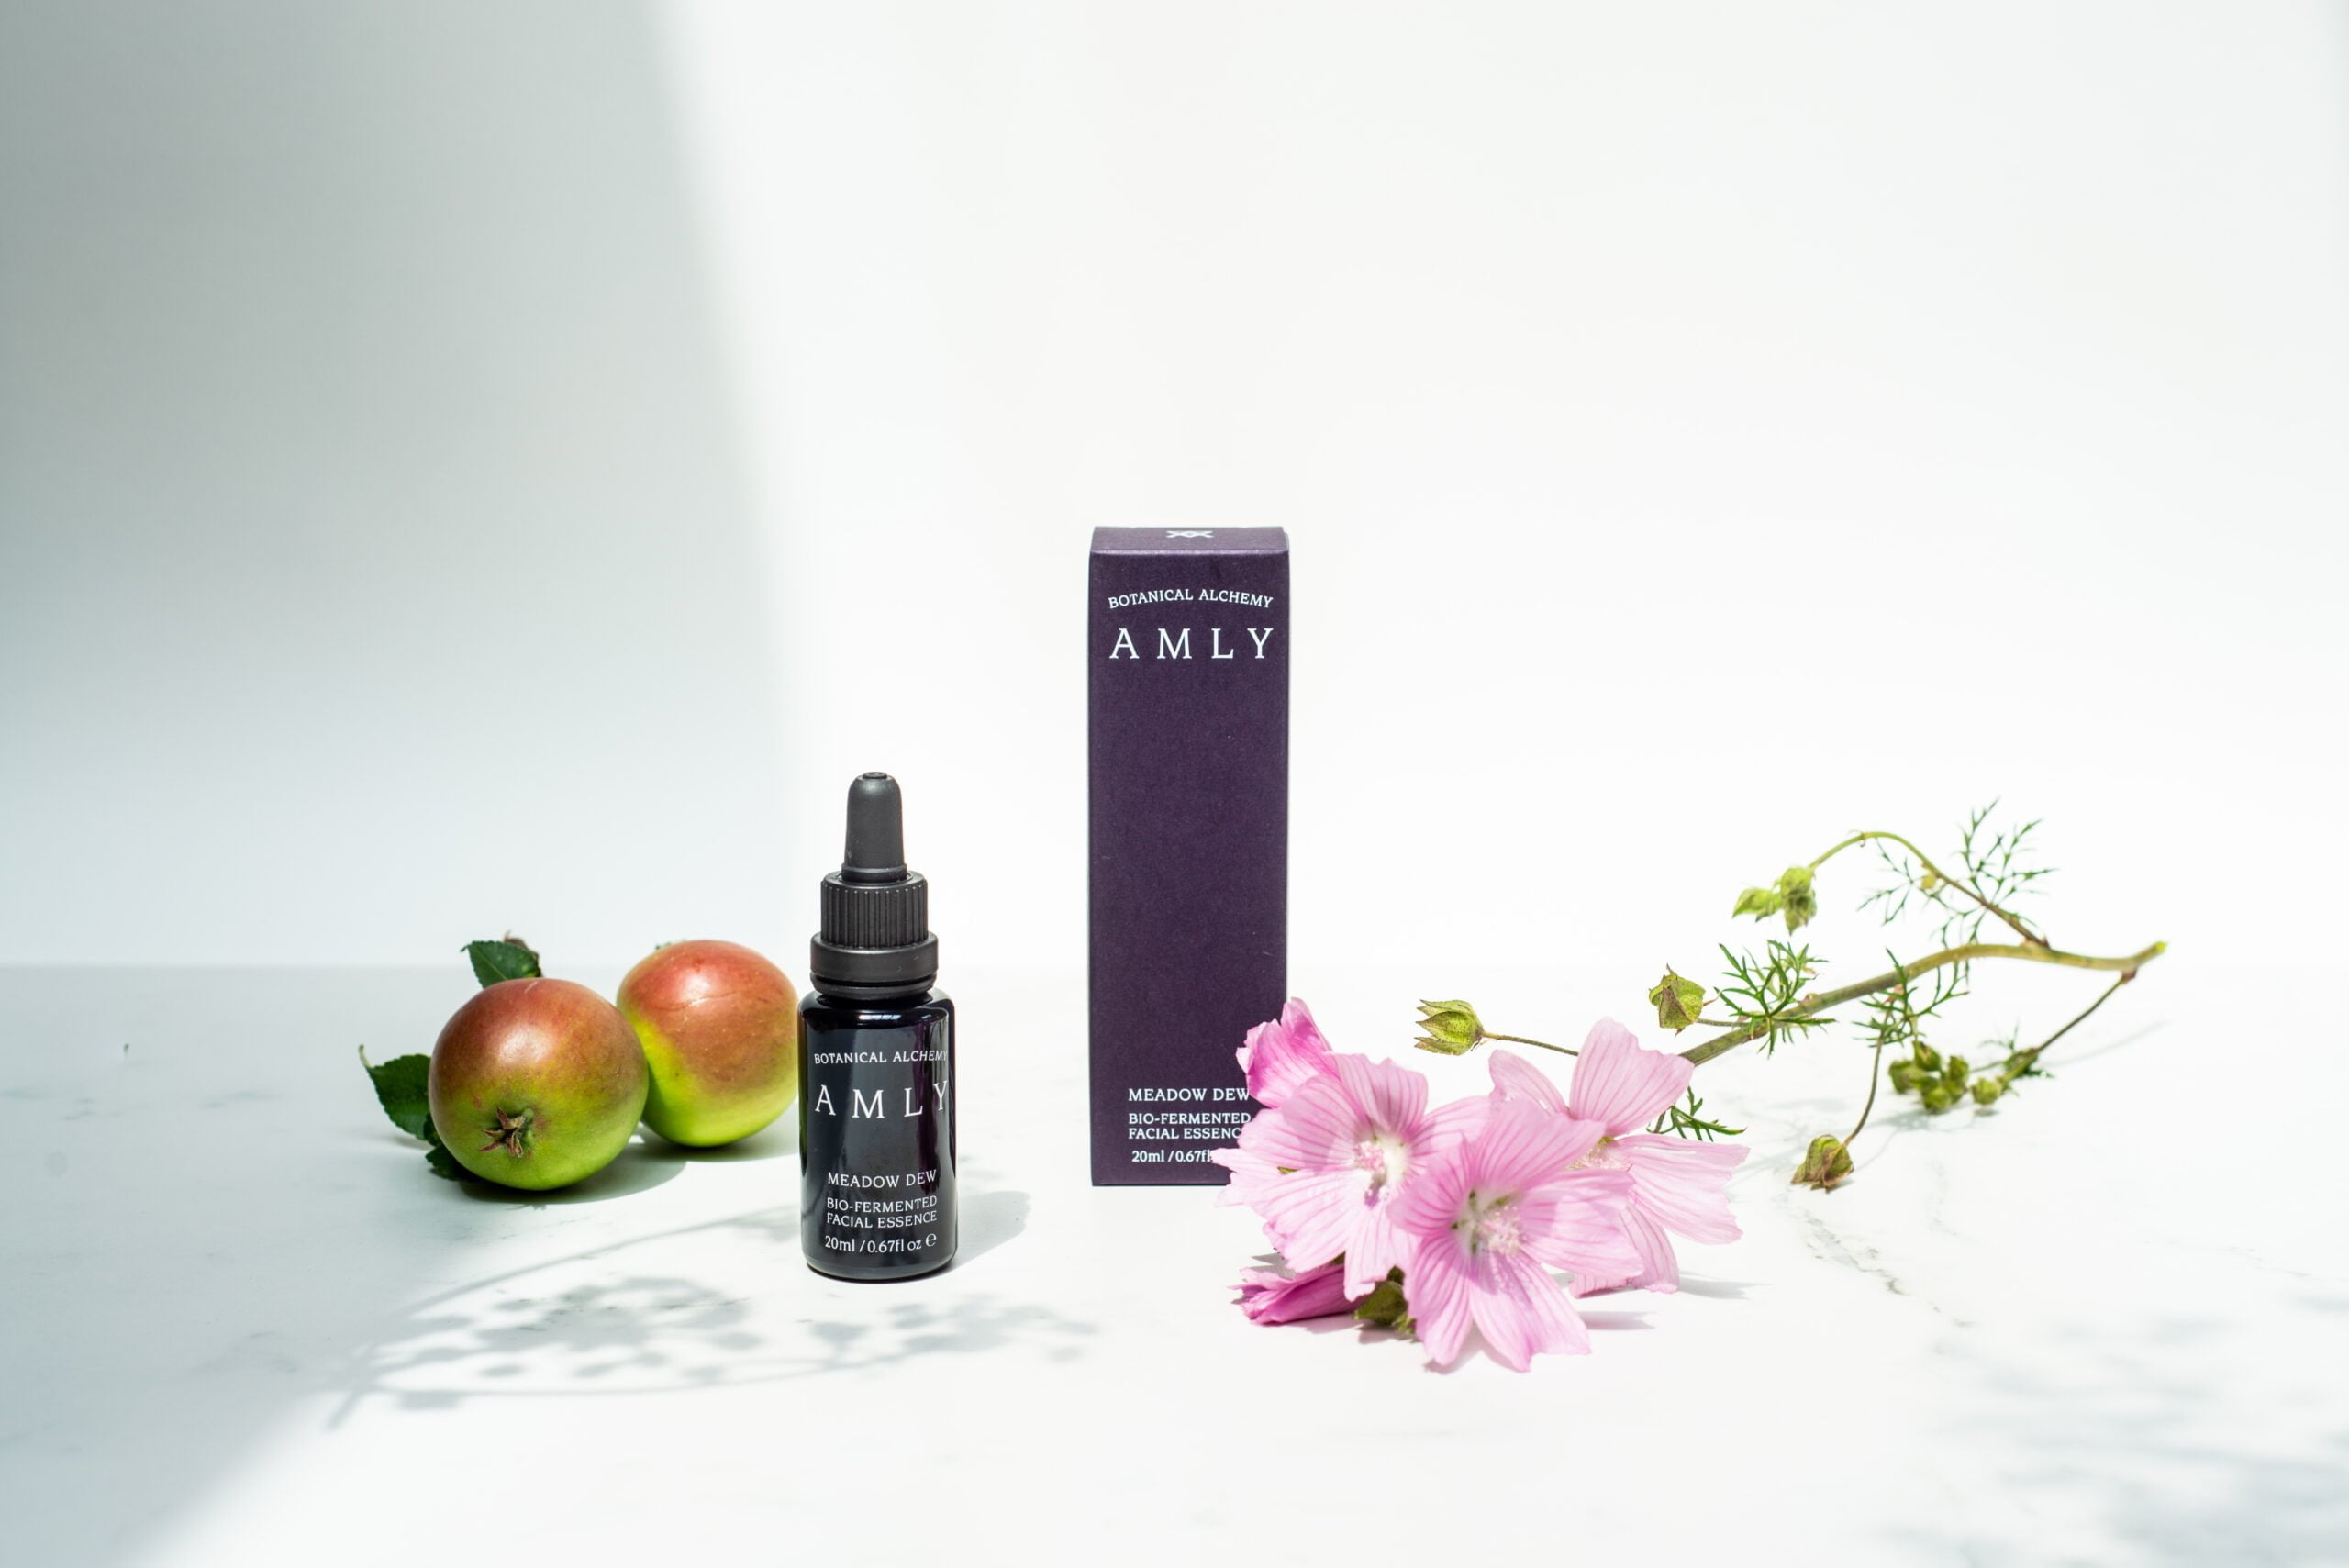 AMLY Autumn shot with meadow dew facial essence, apples and meadow dew